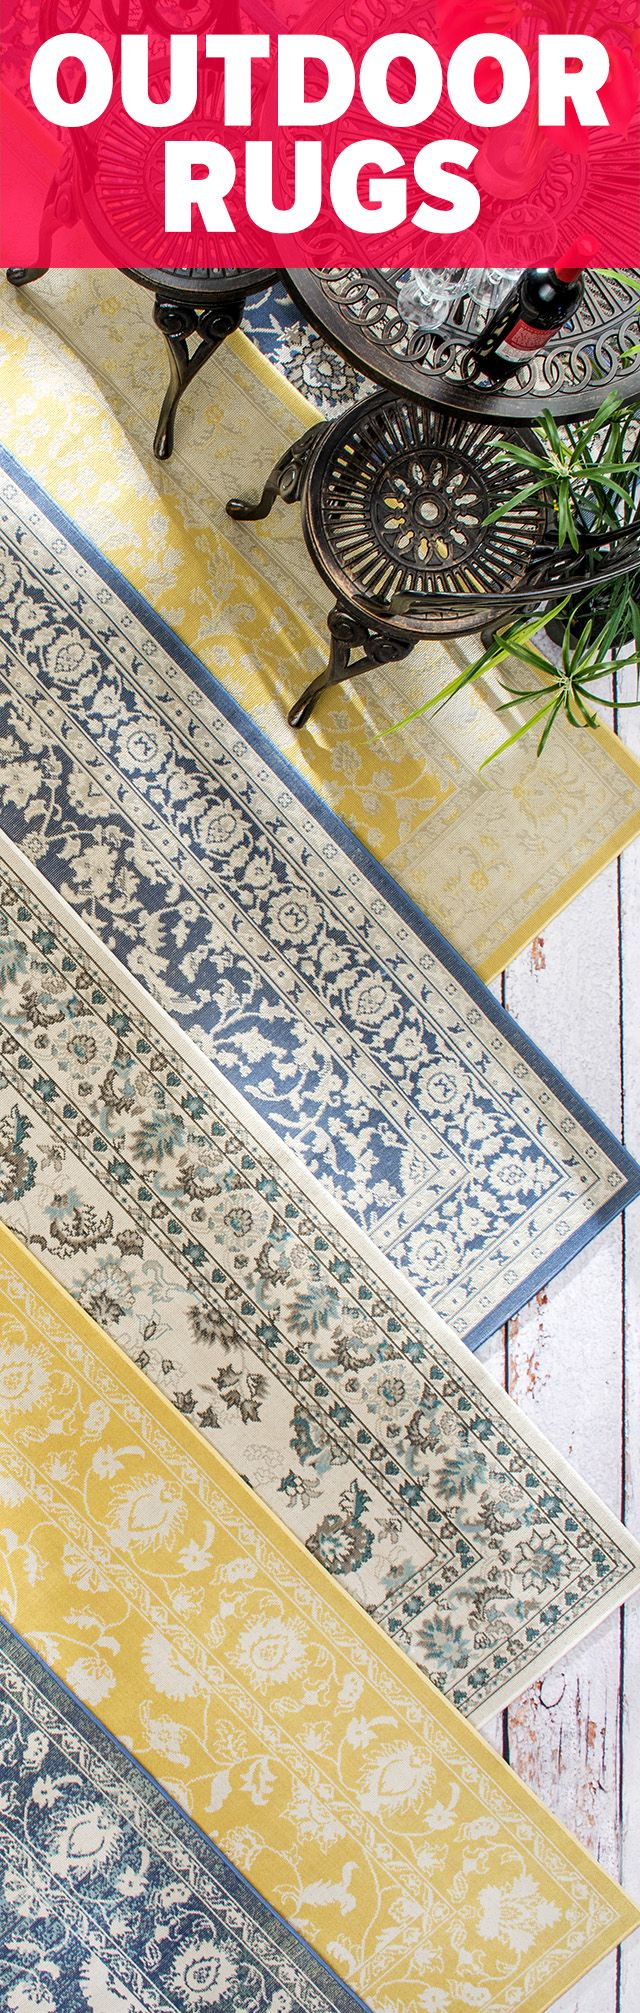 Rugs USA has a delightful combination of Outdoor Rugs that are both durable and beautiful! Click above to see a variety of options with savings of up to 80% off!